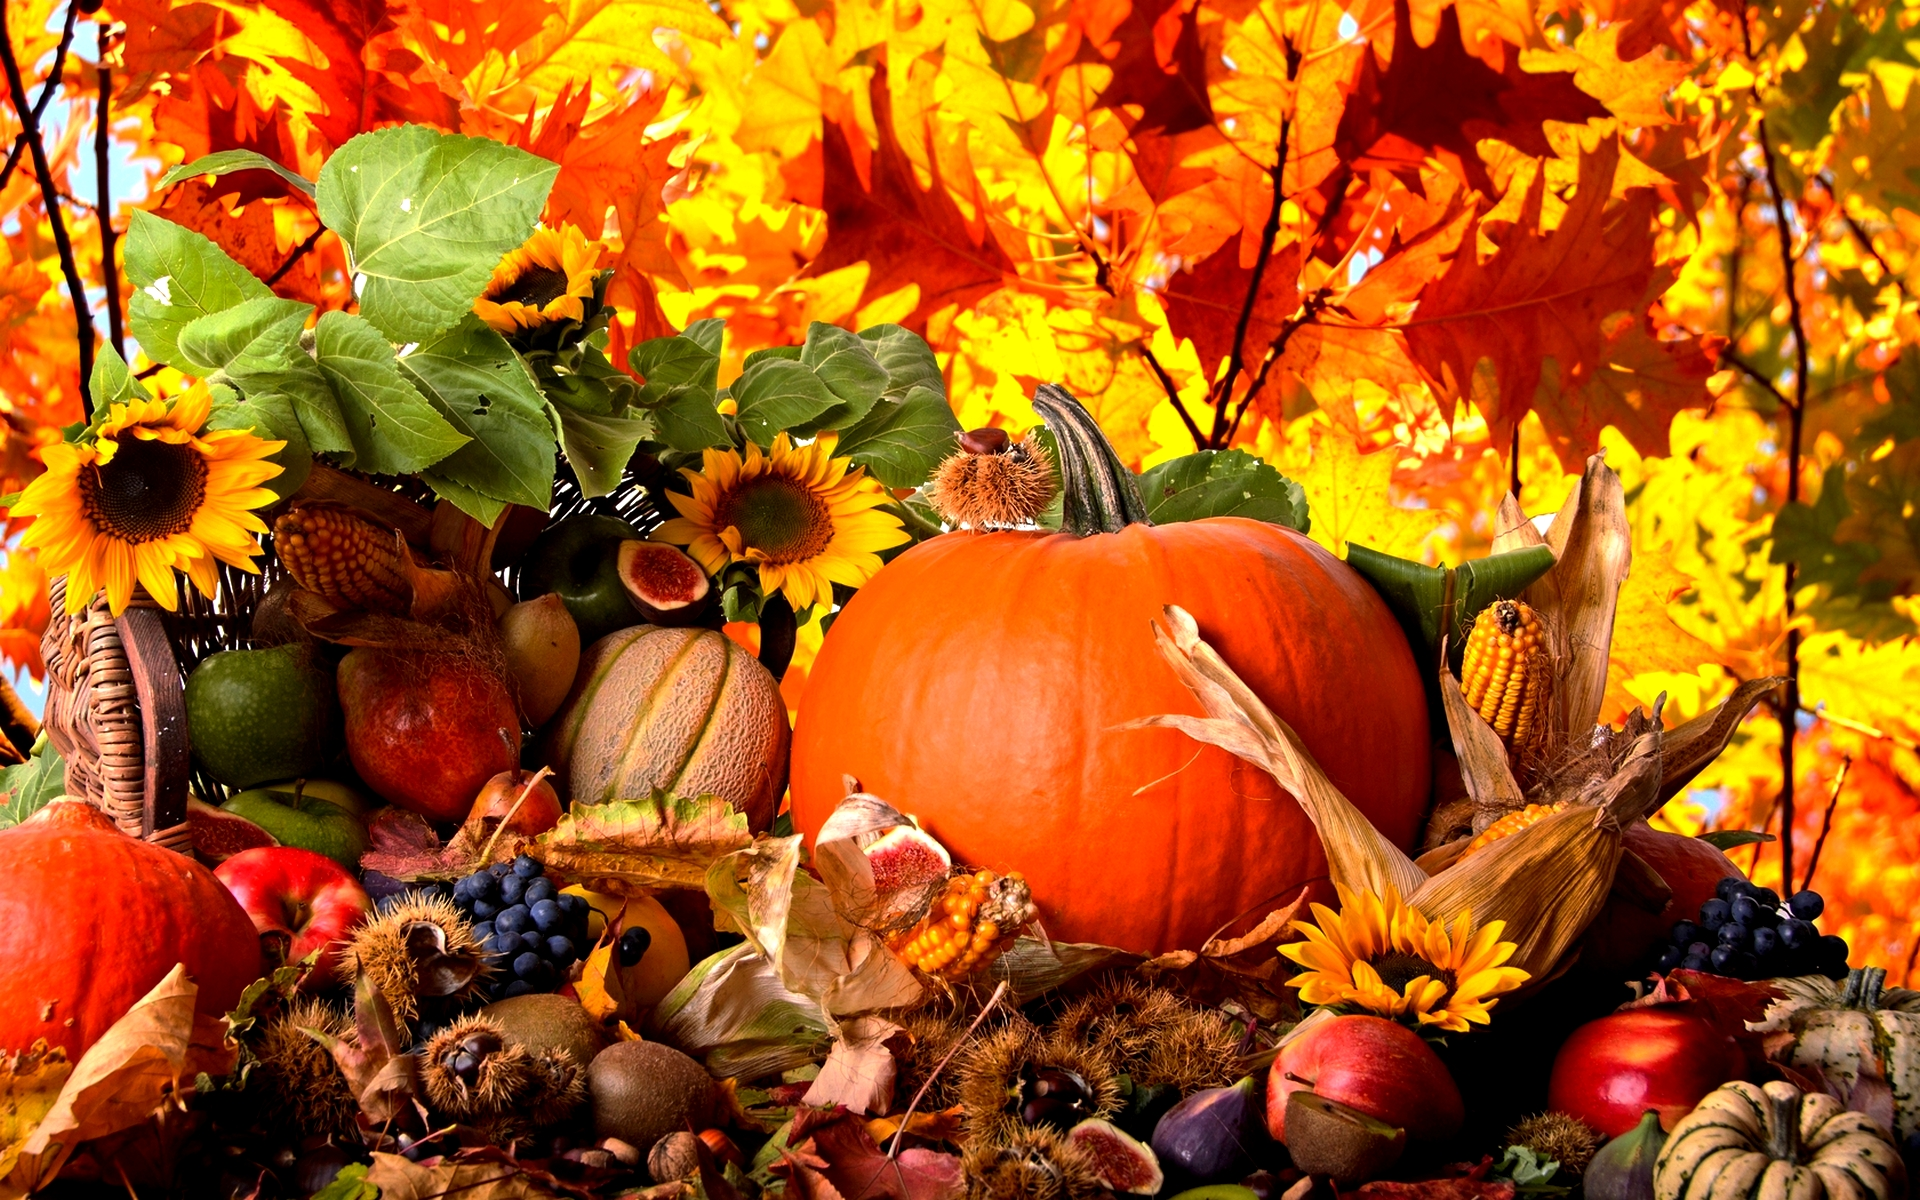 Autumn Harvest Abstract Wallpapers Hd Free 1920x1200px